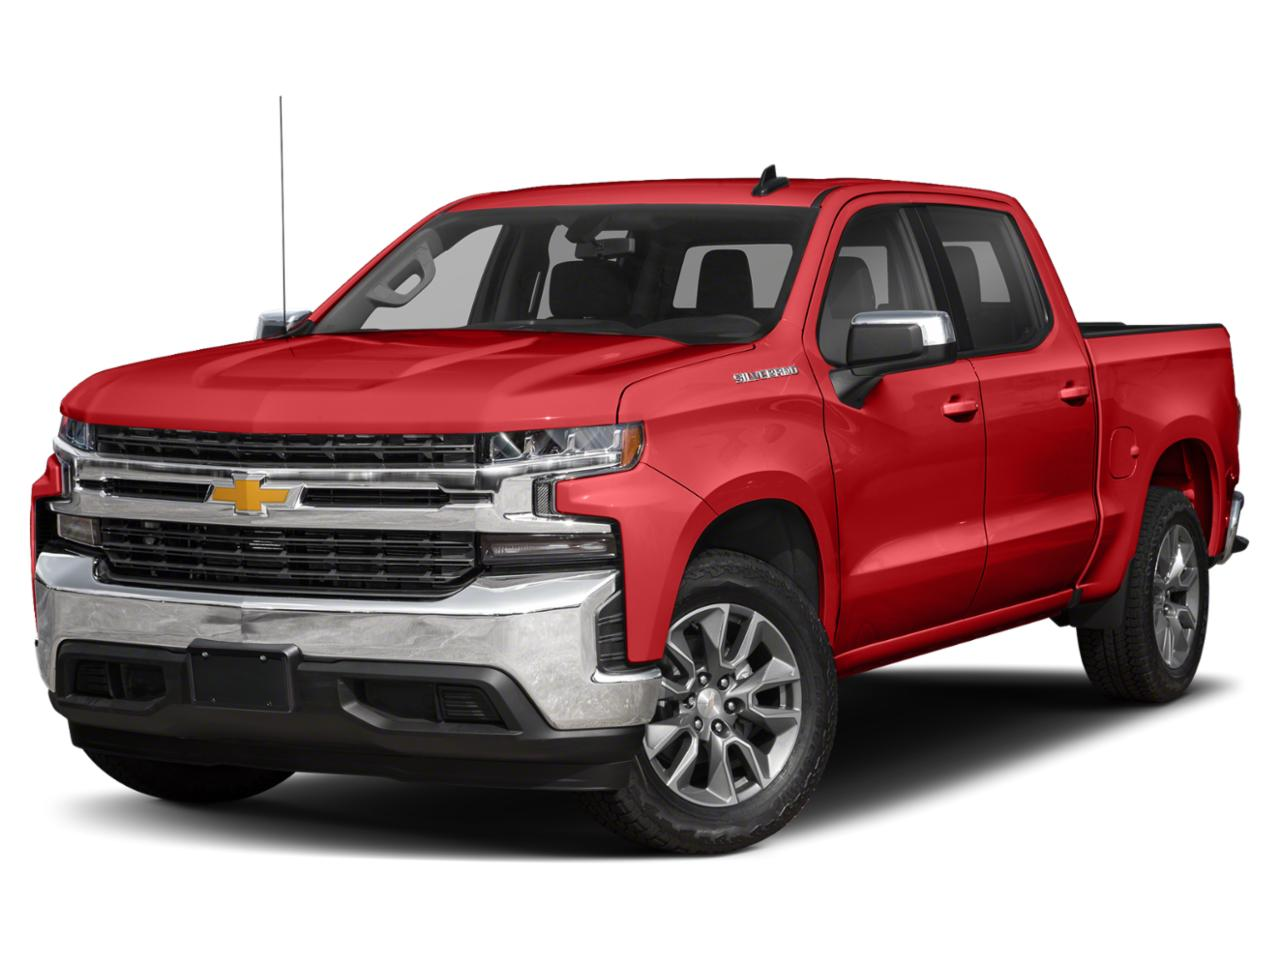 2021 Chevrolet Silverado 1500 Vehicle Photo in Greeley, CO 80634